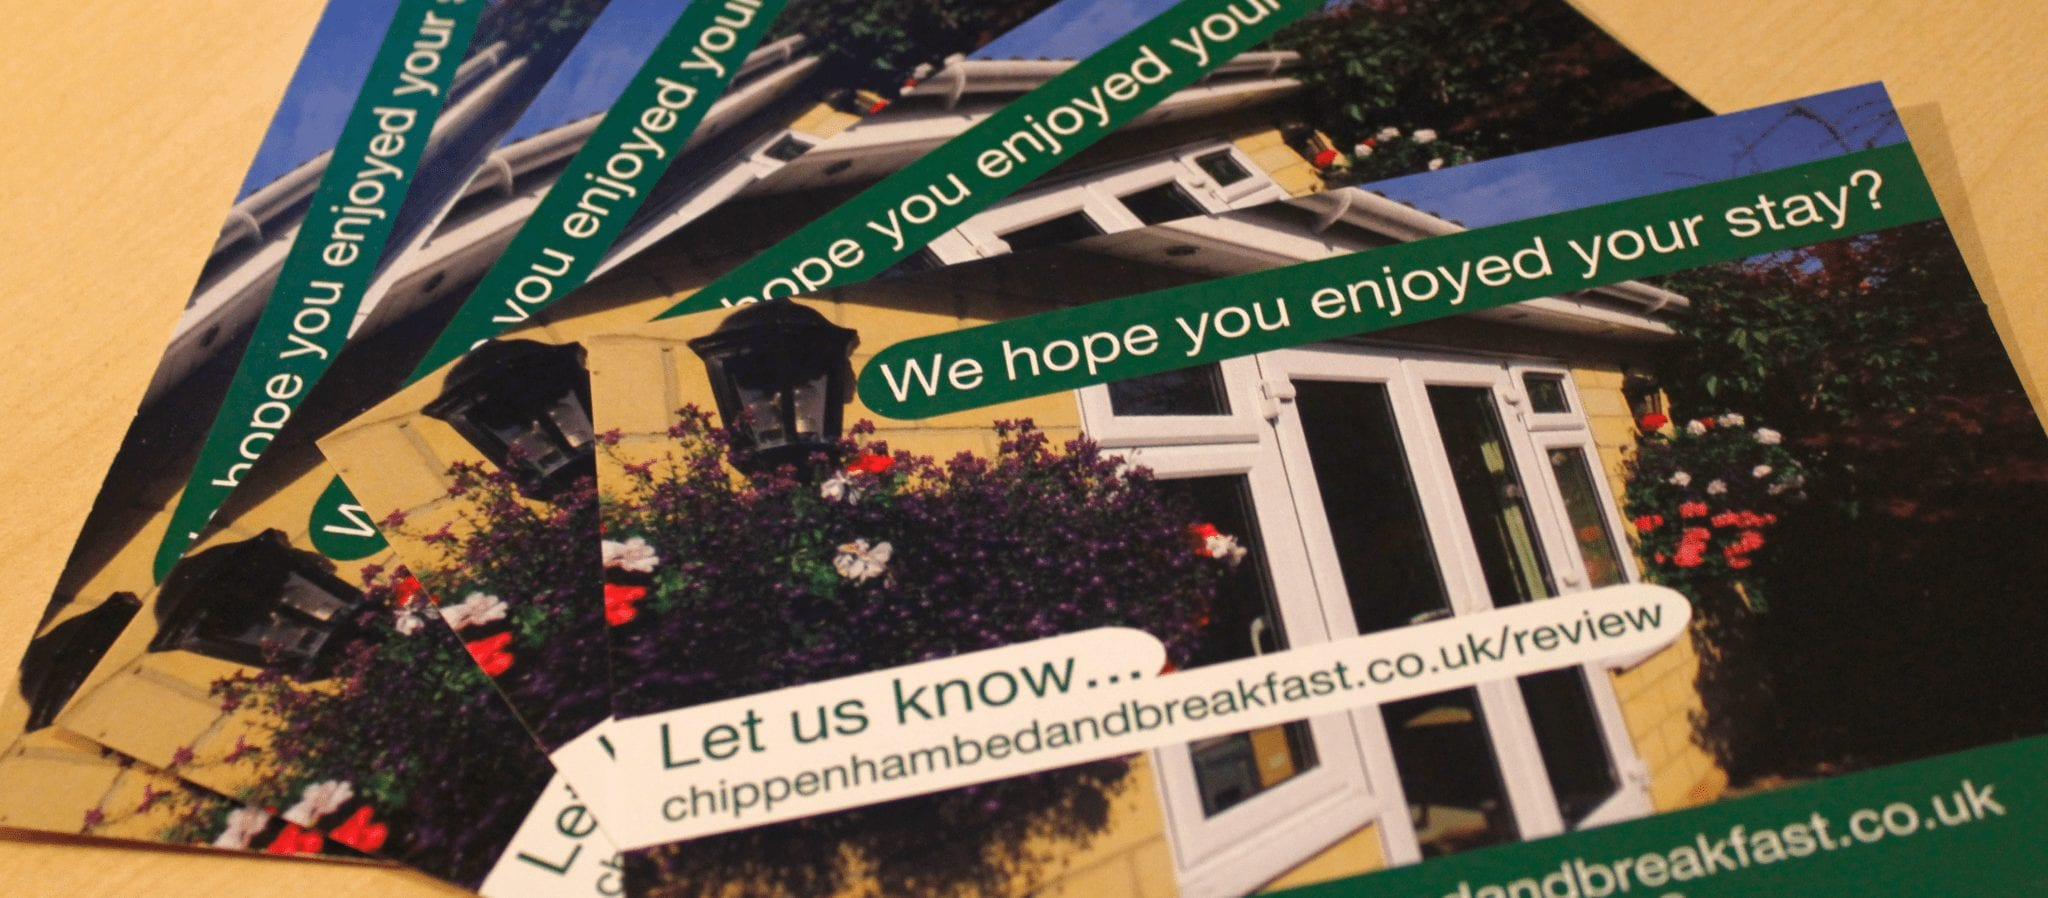 postcards-designed-and-printed-for-london-road-garden-annex....png